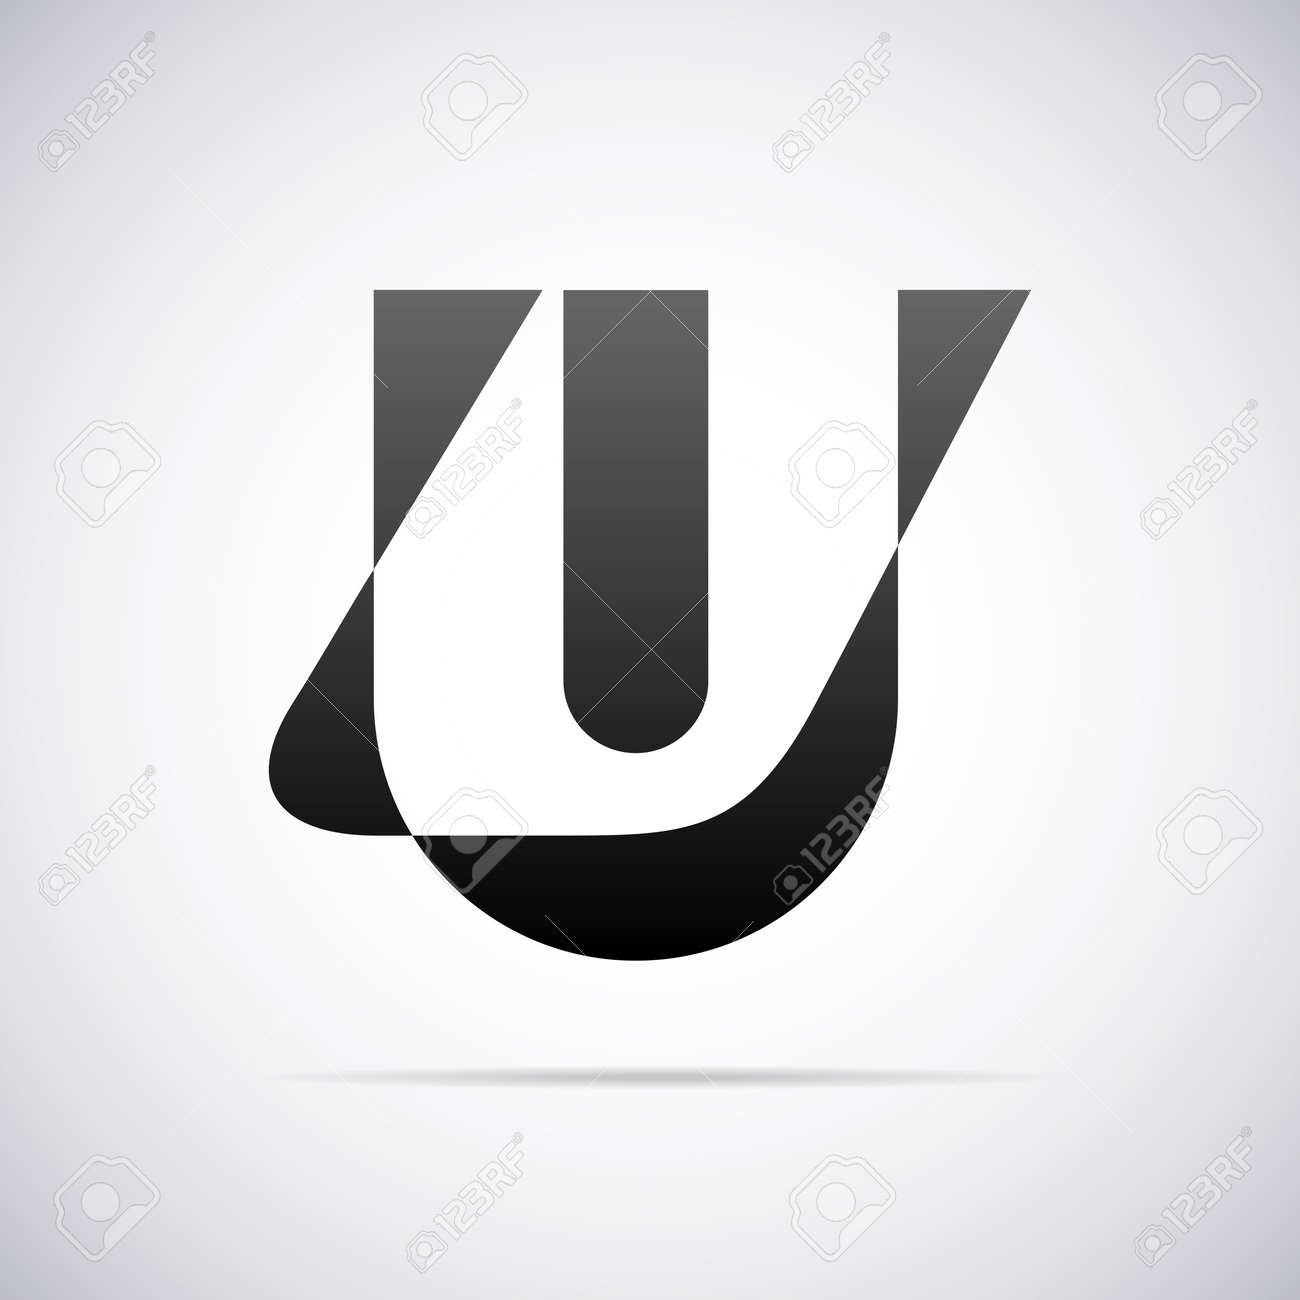 Letter U Design Template Vector Illustration Royalty Free Cliparts